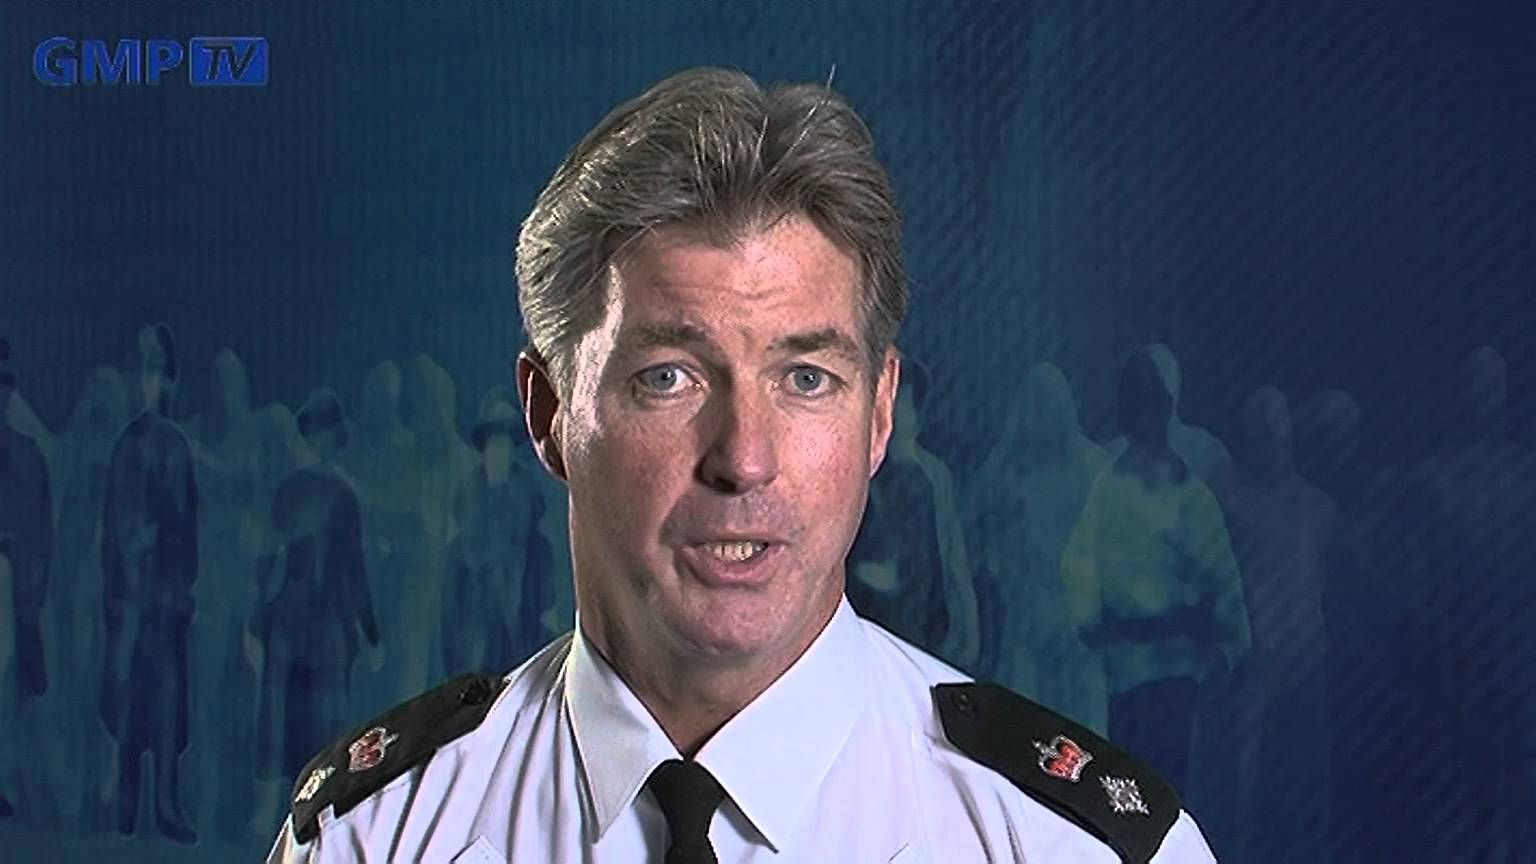 Greater Manchester Police's Chief Superintendent John O'Hare, Head of Specialist Operations, talks about the impact of social media on operational policing and how the Force can communicate in emergency situations. www.gmp.police.uk